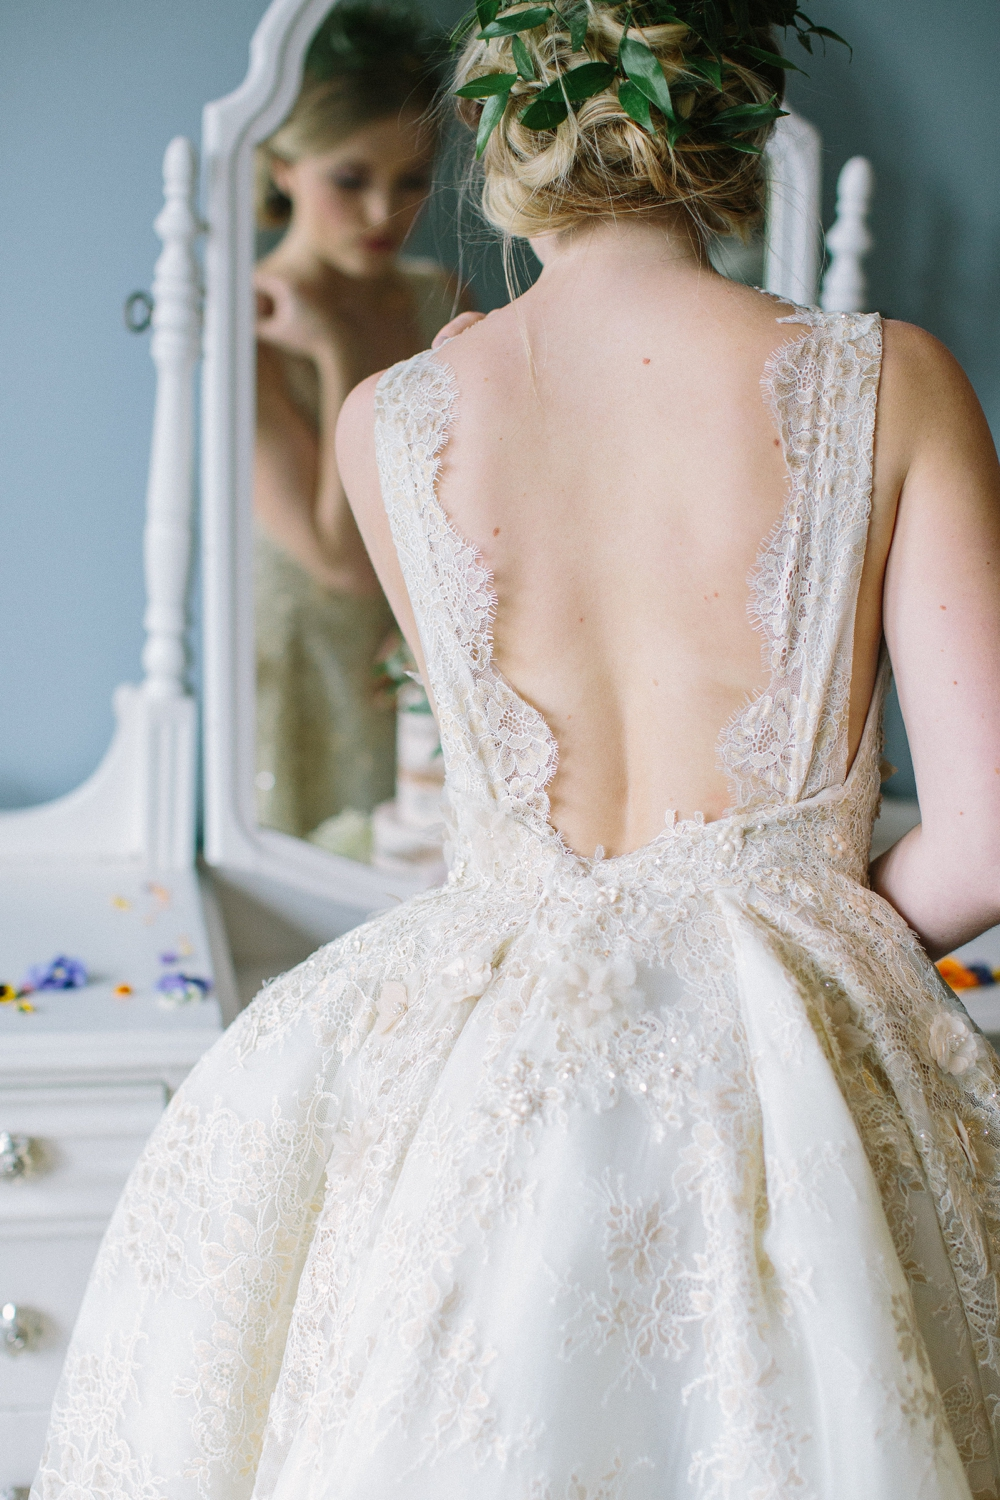 Minnesota_Wedding_Planner_Inspiration_Shoot_0958.jpg